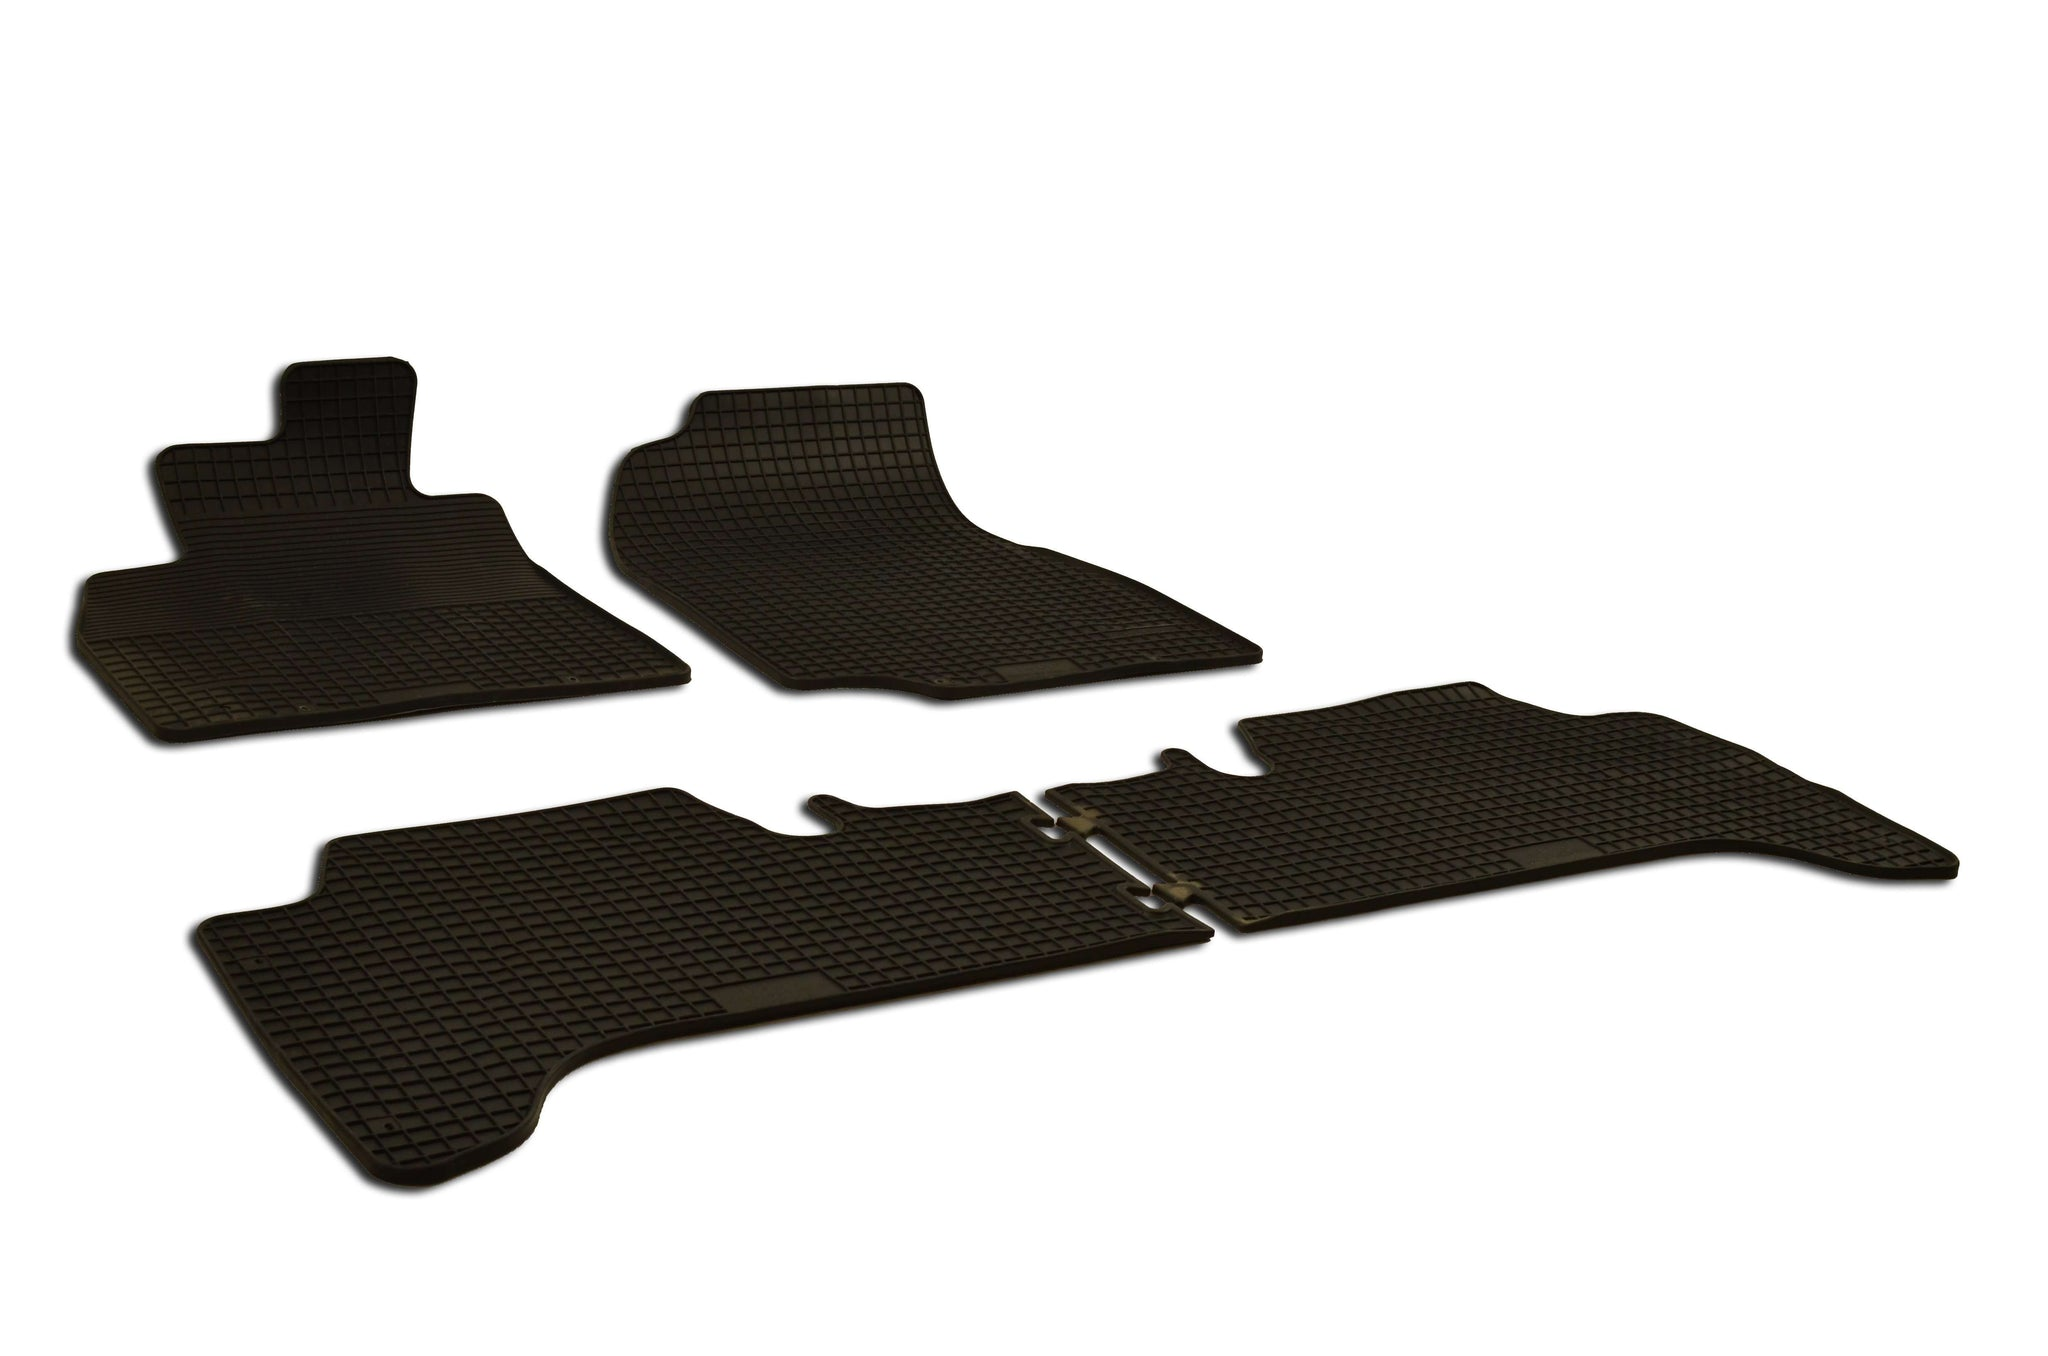 Toyota Land Cruiser 2001 Set of 4 Black Rubber OE Fit All Weather Car Floor Mats